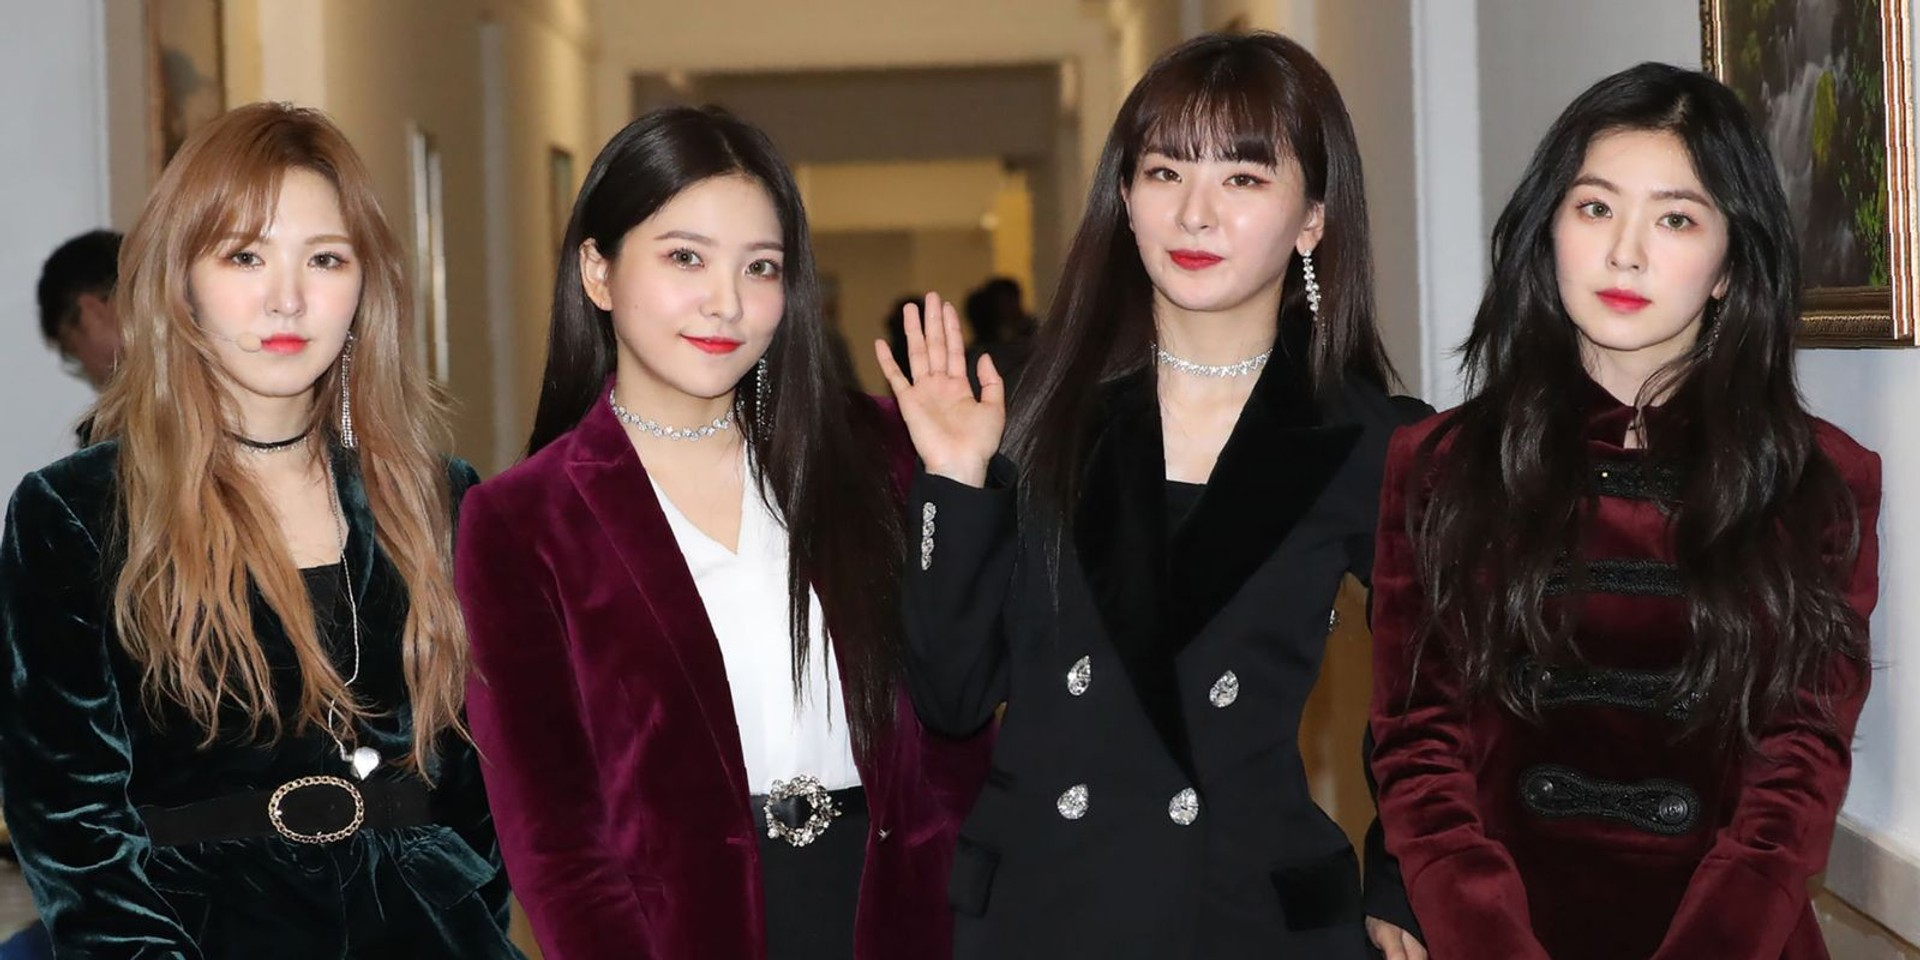 Red Velvet performed for Kim Jong-Un in North Korea and their fans had thoughts